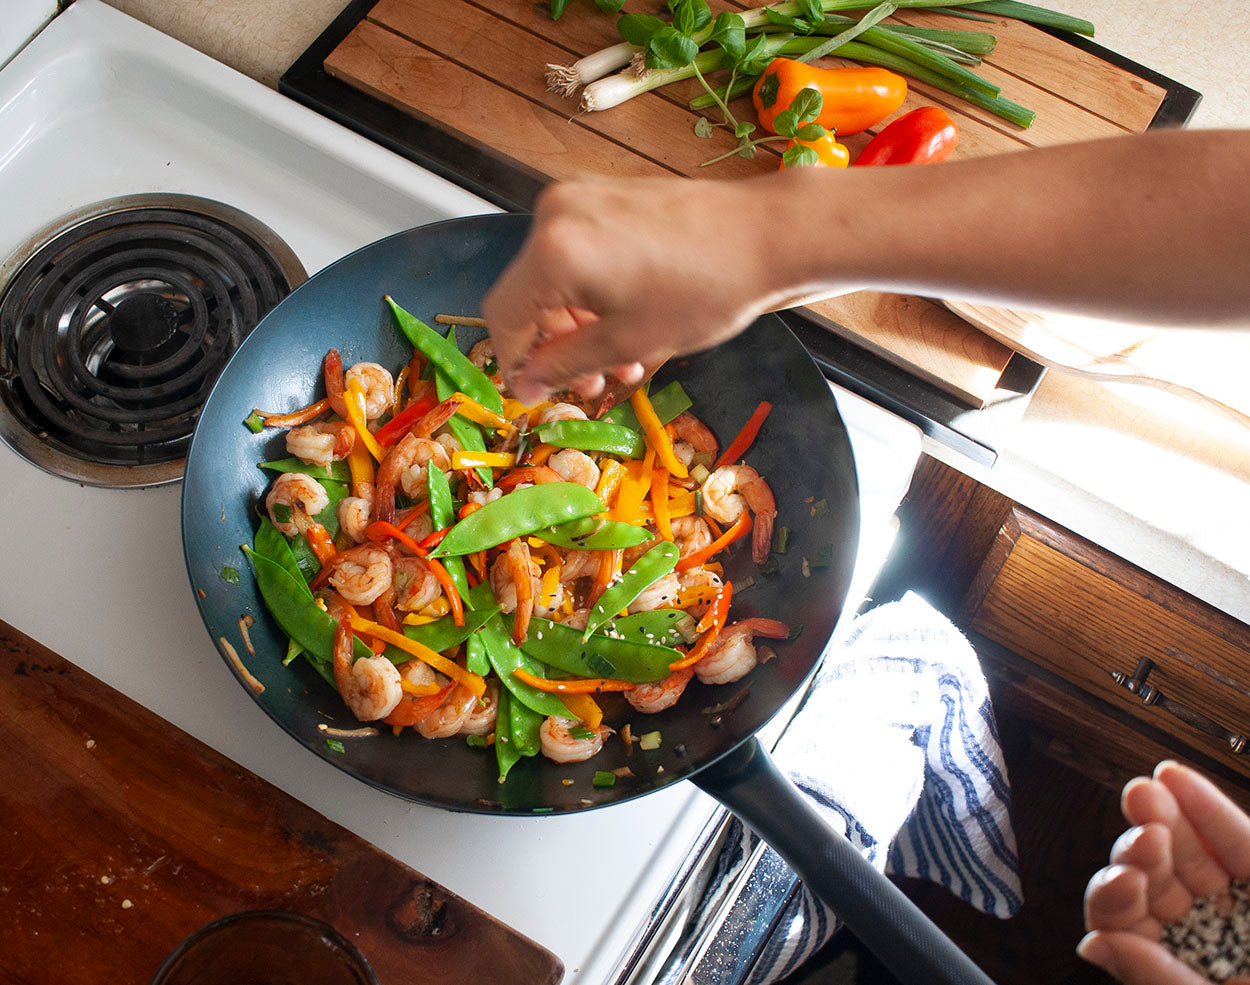 Handmade carbon steel cookware for your everyday life. The best wok you will ever own.